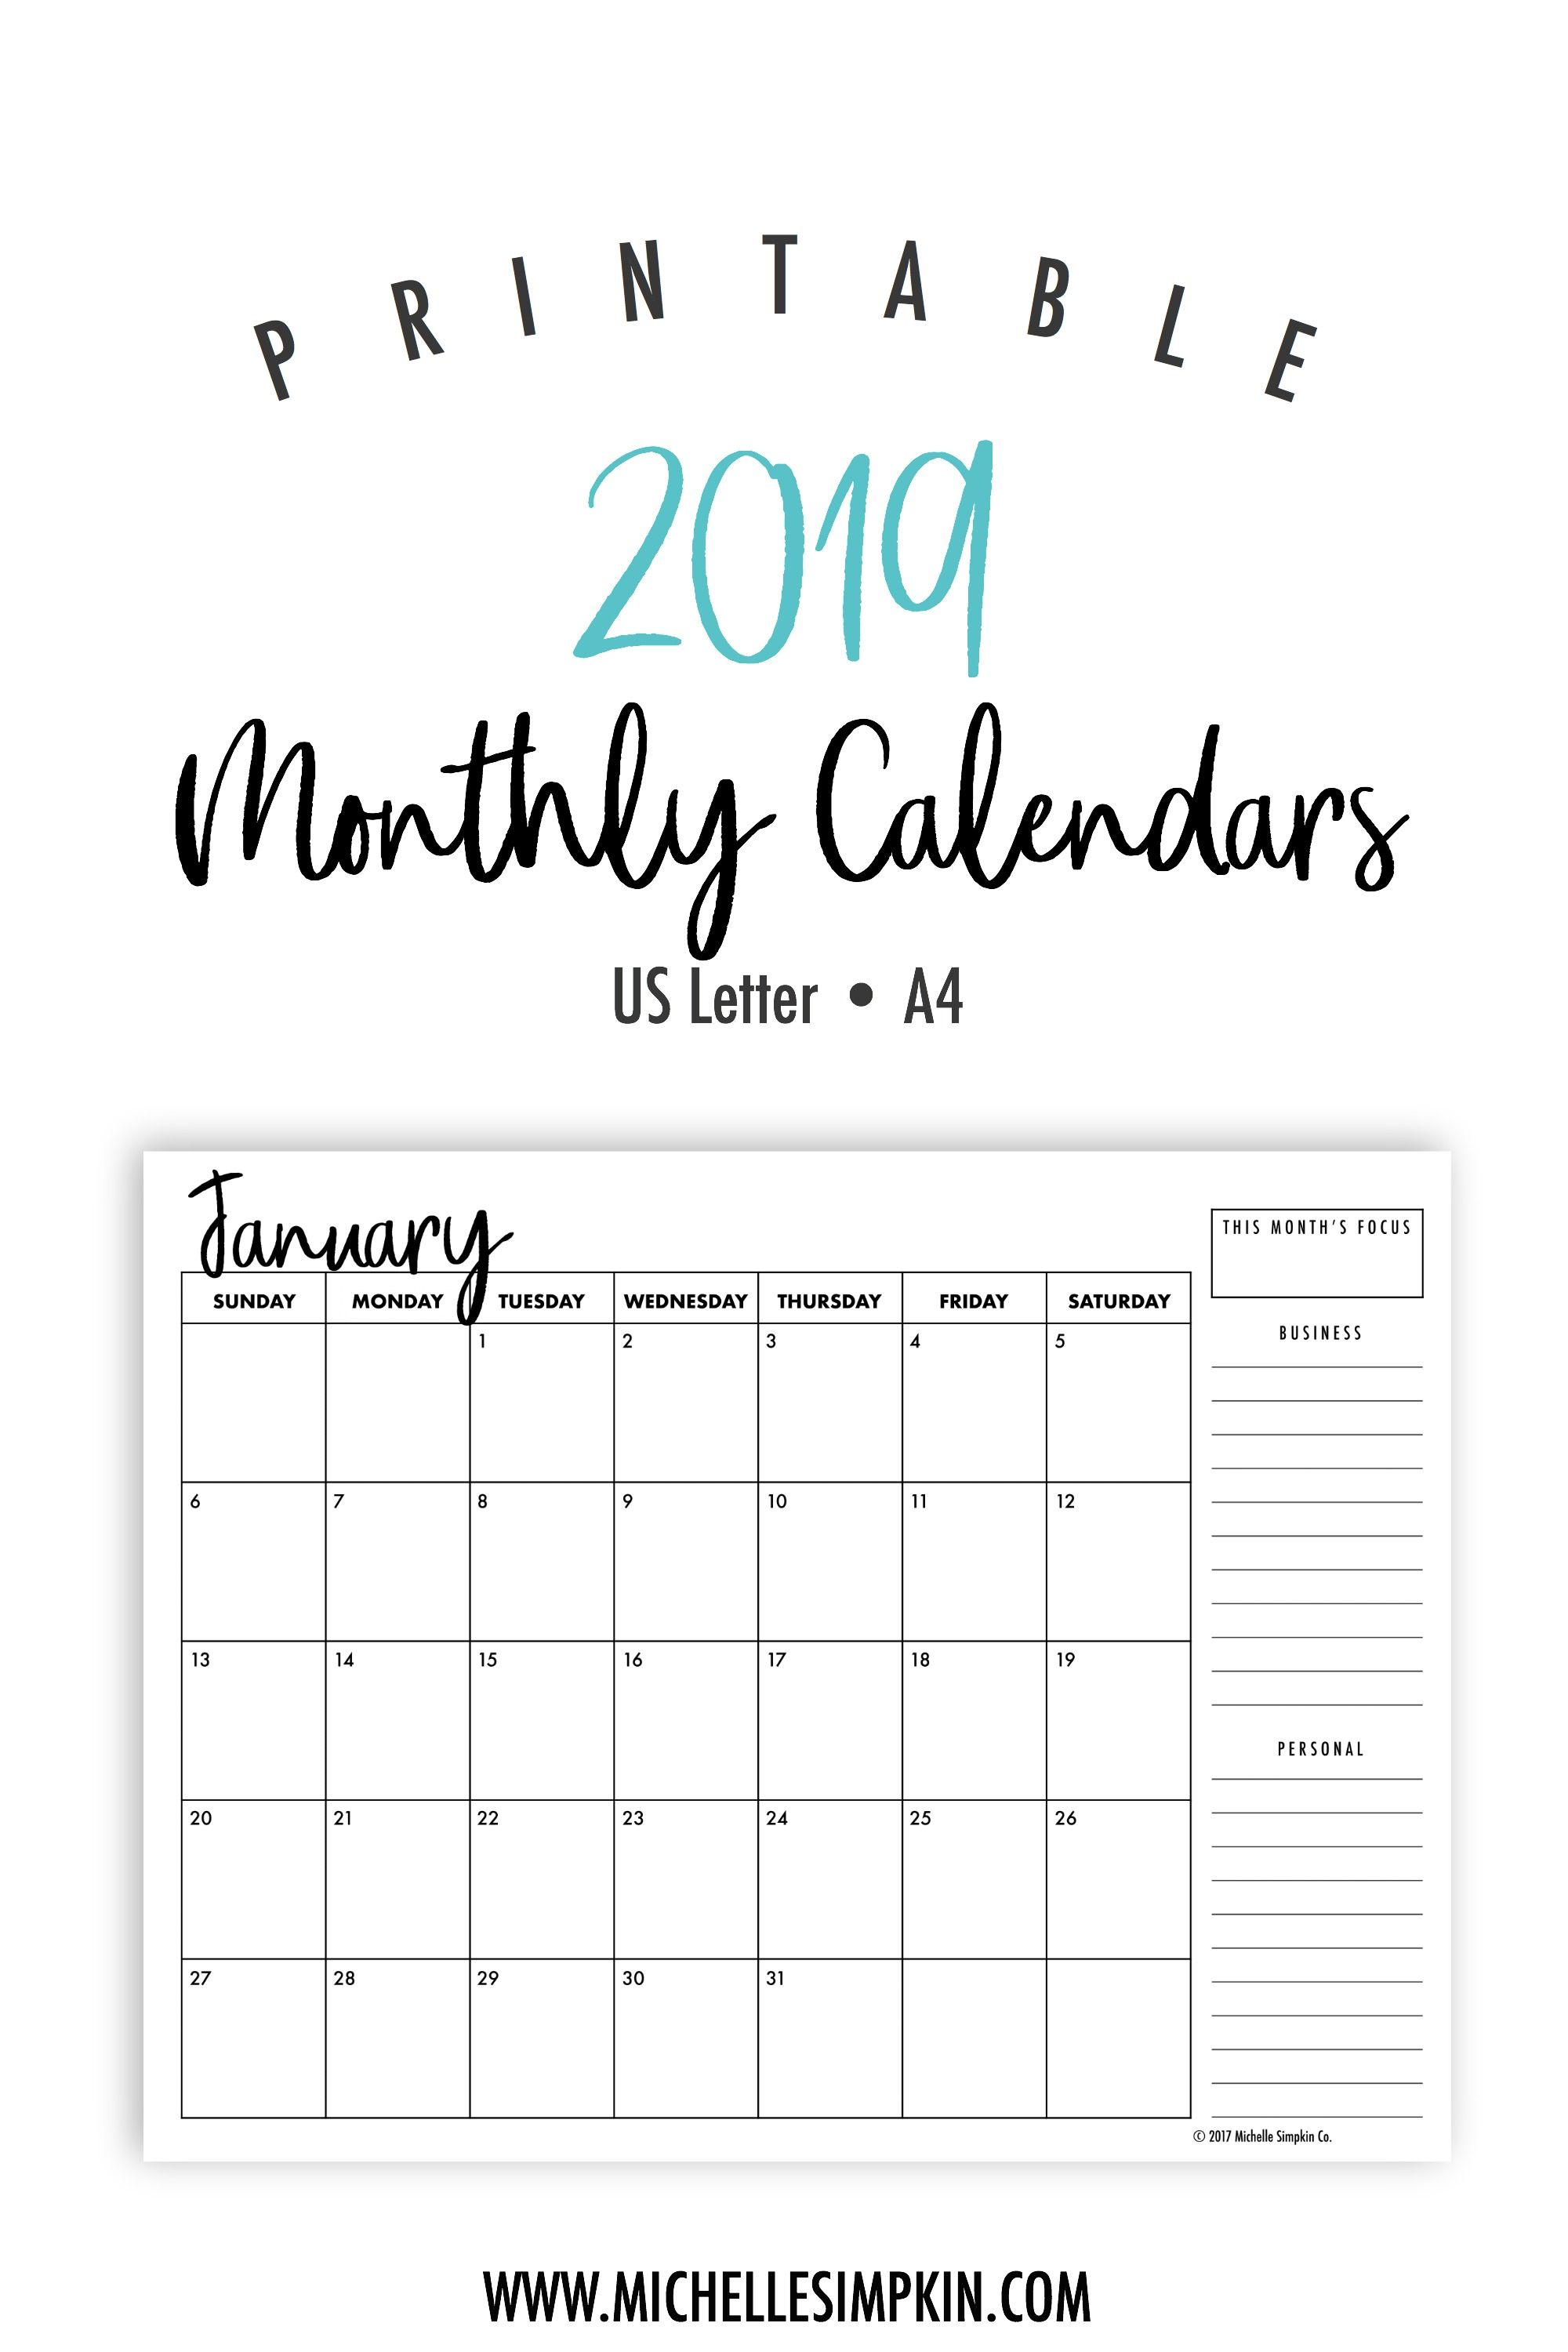 2019 Year Calendar By Month With Printable Monthly Calendars Landscape US Letter A4